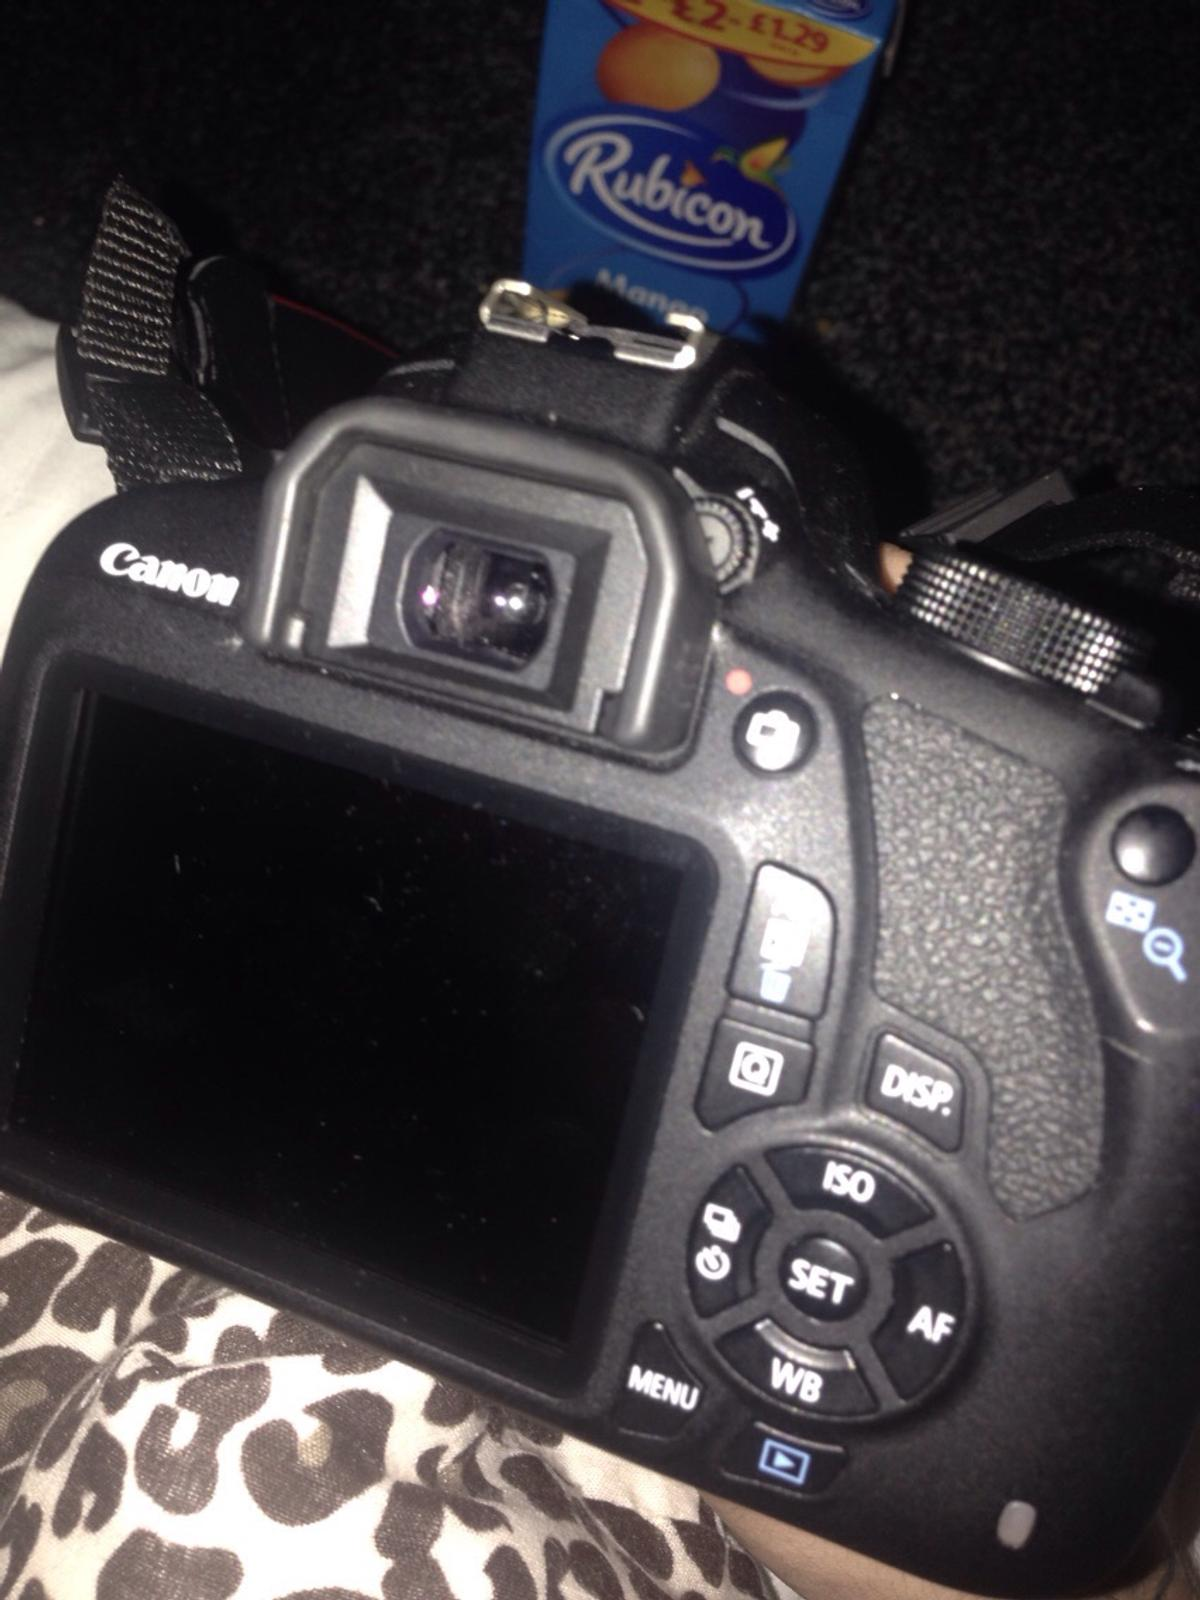 Canon 1200D DSLR COMES WITH BOX in M11 Manchester for